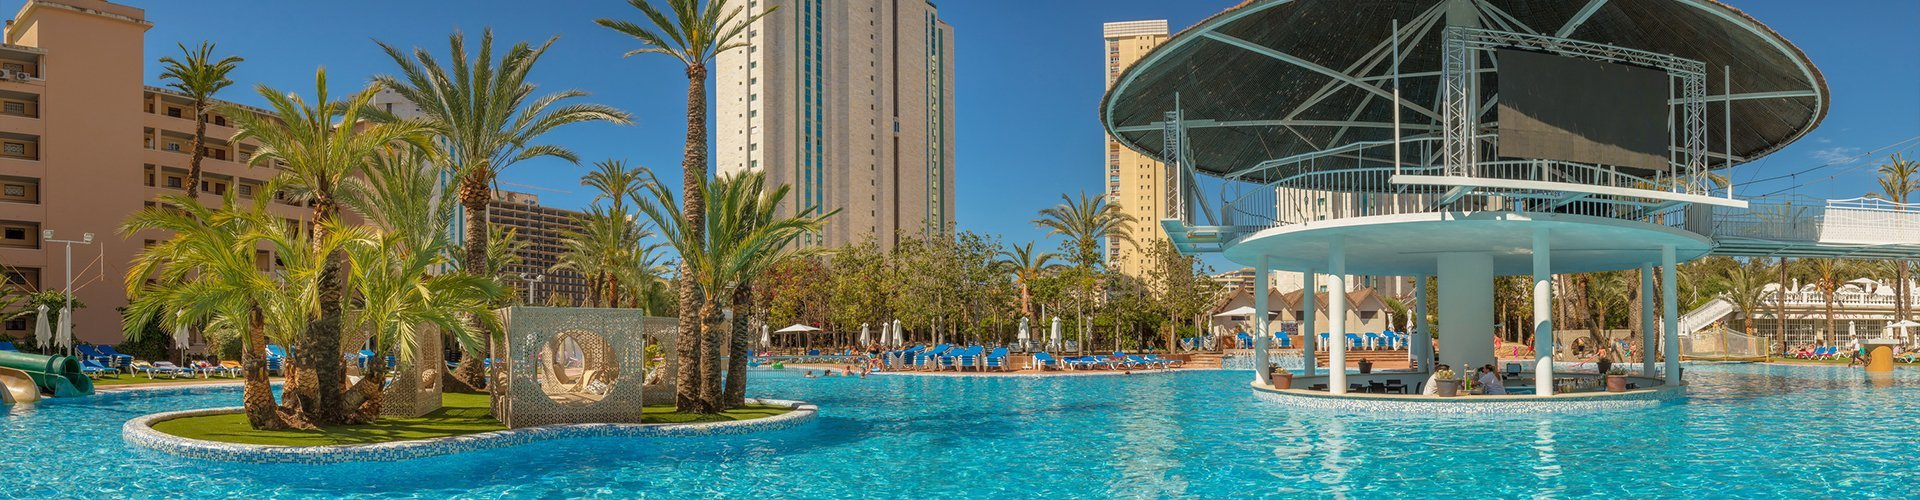 Magic Aqua™ Tropical Splash - Benidorm -